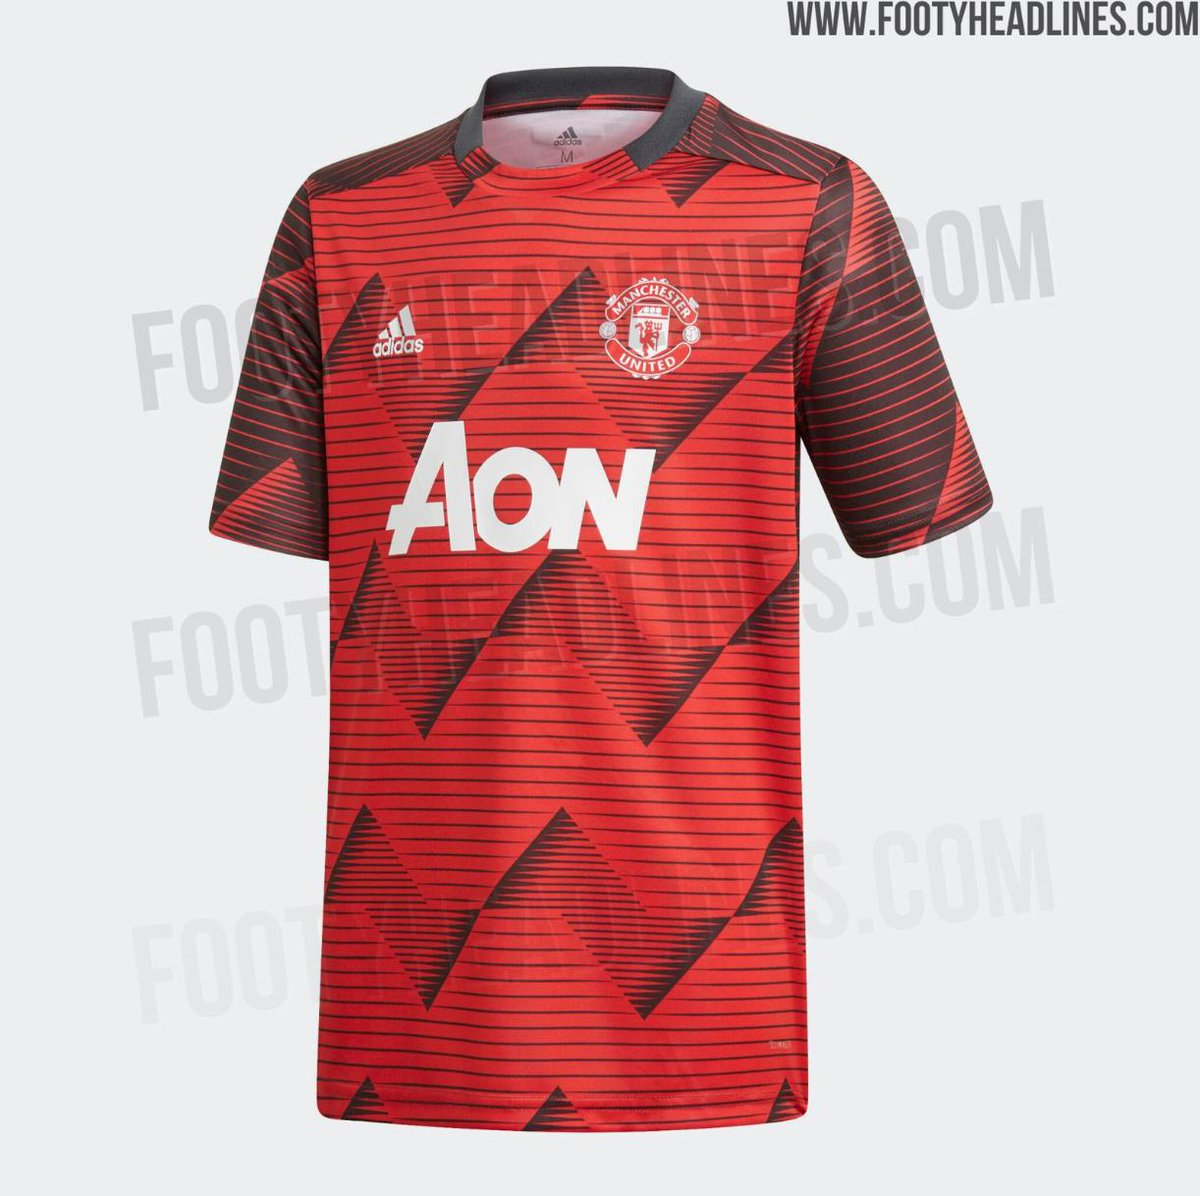 Photos: #mufc pre-match shirt to be worn for the second half of the 2019/20 season #mulive [ http:// footyheadlines.com    ]<br>http://pic.twitter.com/36TOE567W0